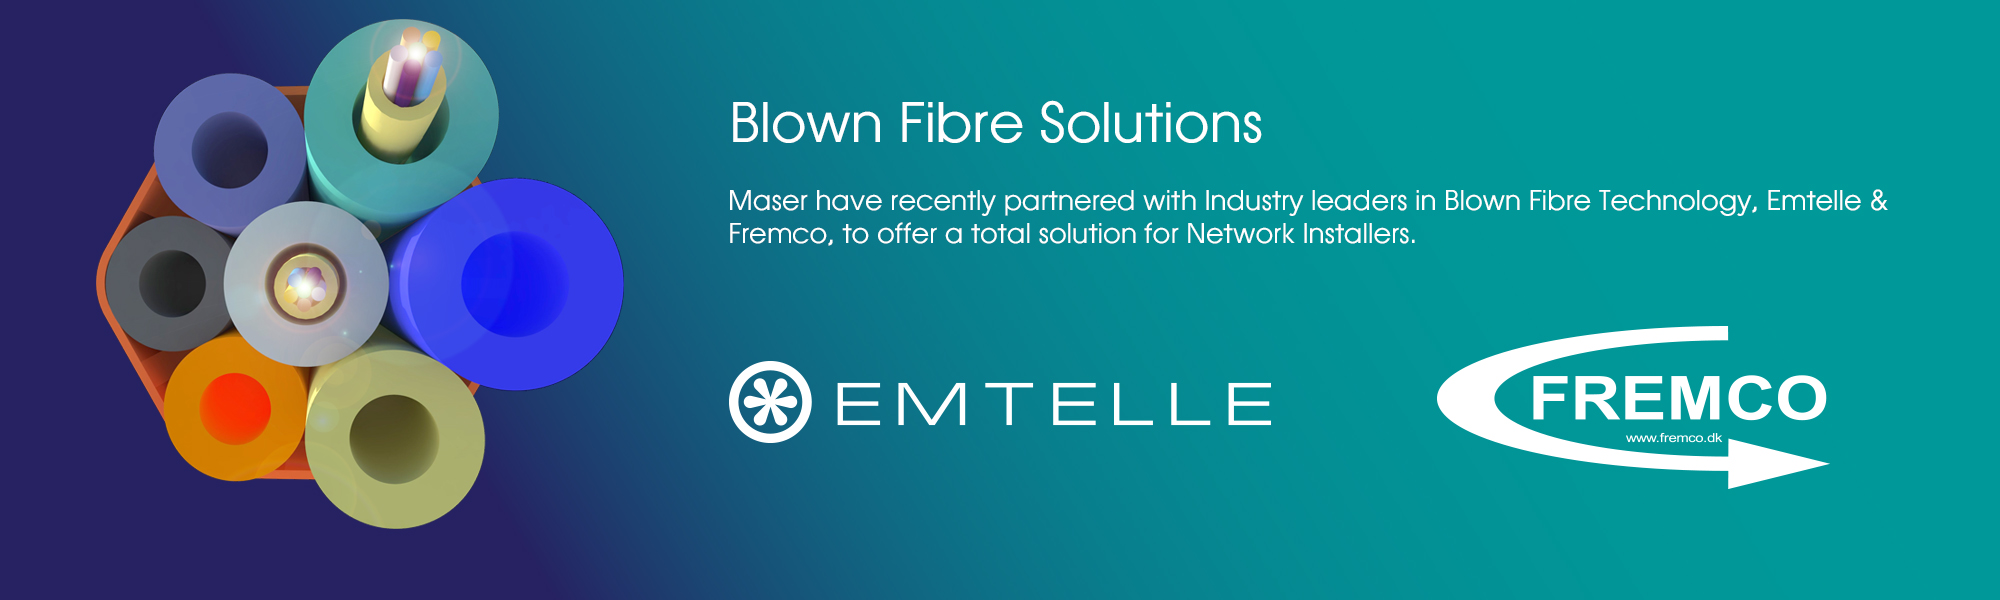 Blown Fibre Solutions